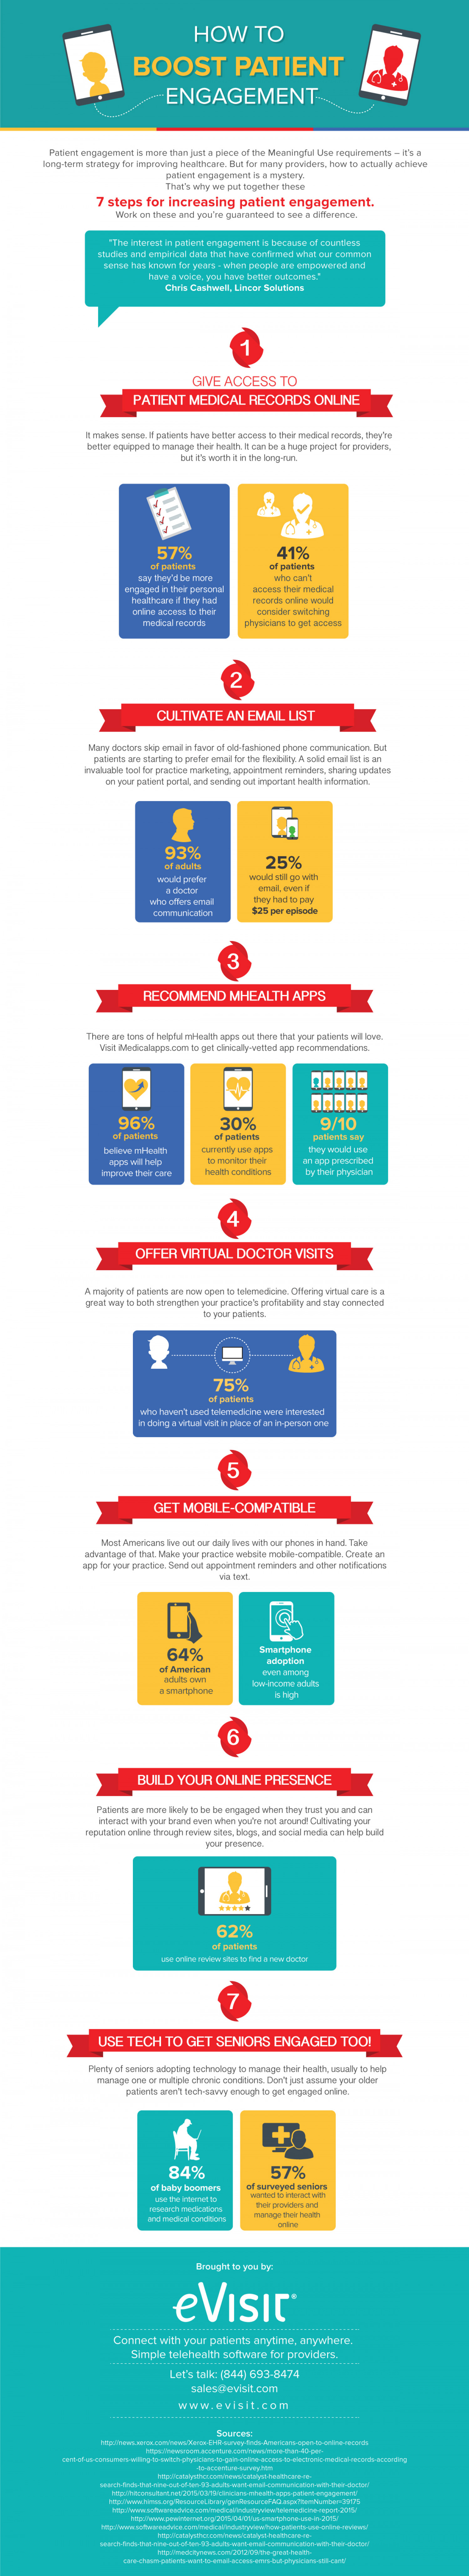 How to Boost Patient Engagement Infographic